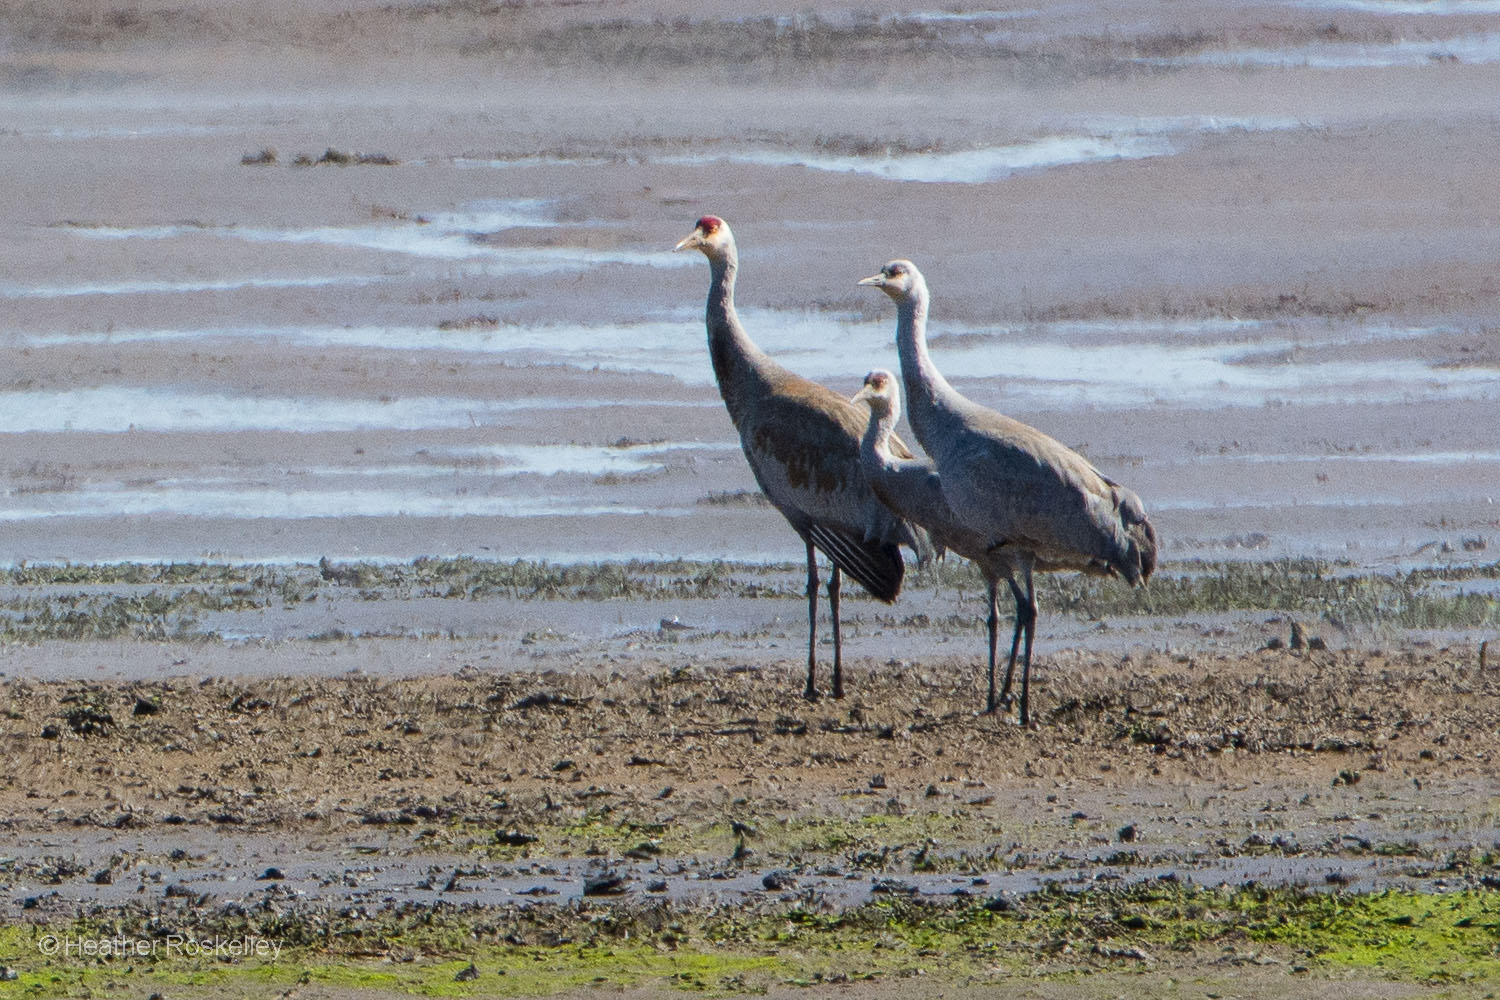 An adult Sandhill Crane with two young cranes.